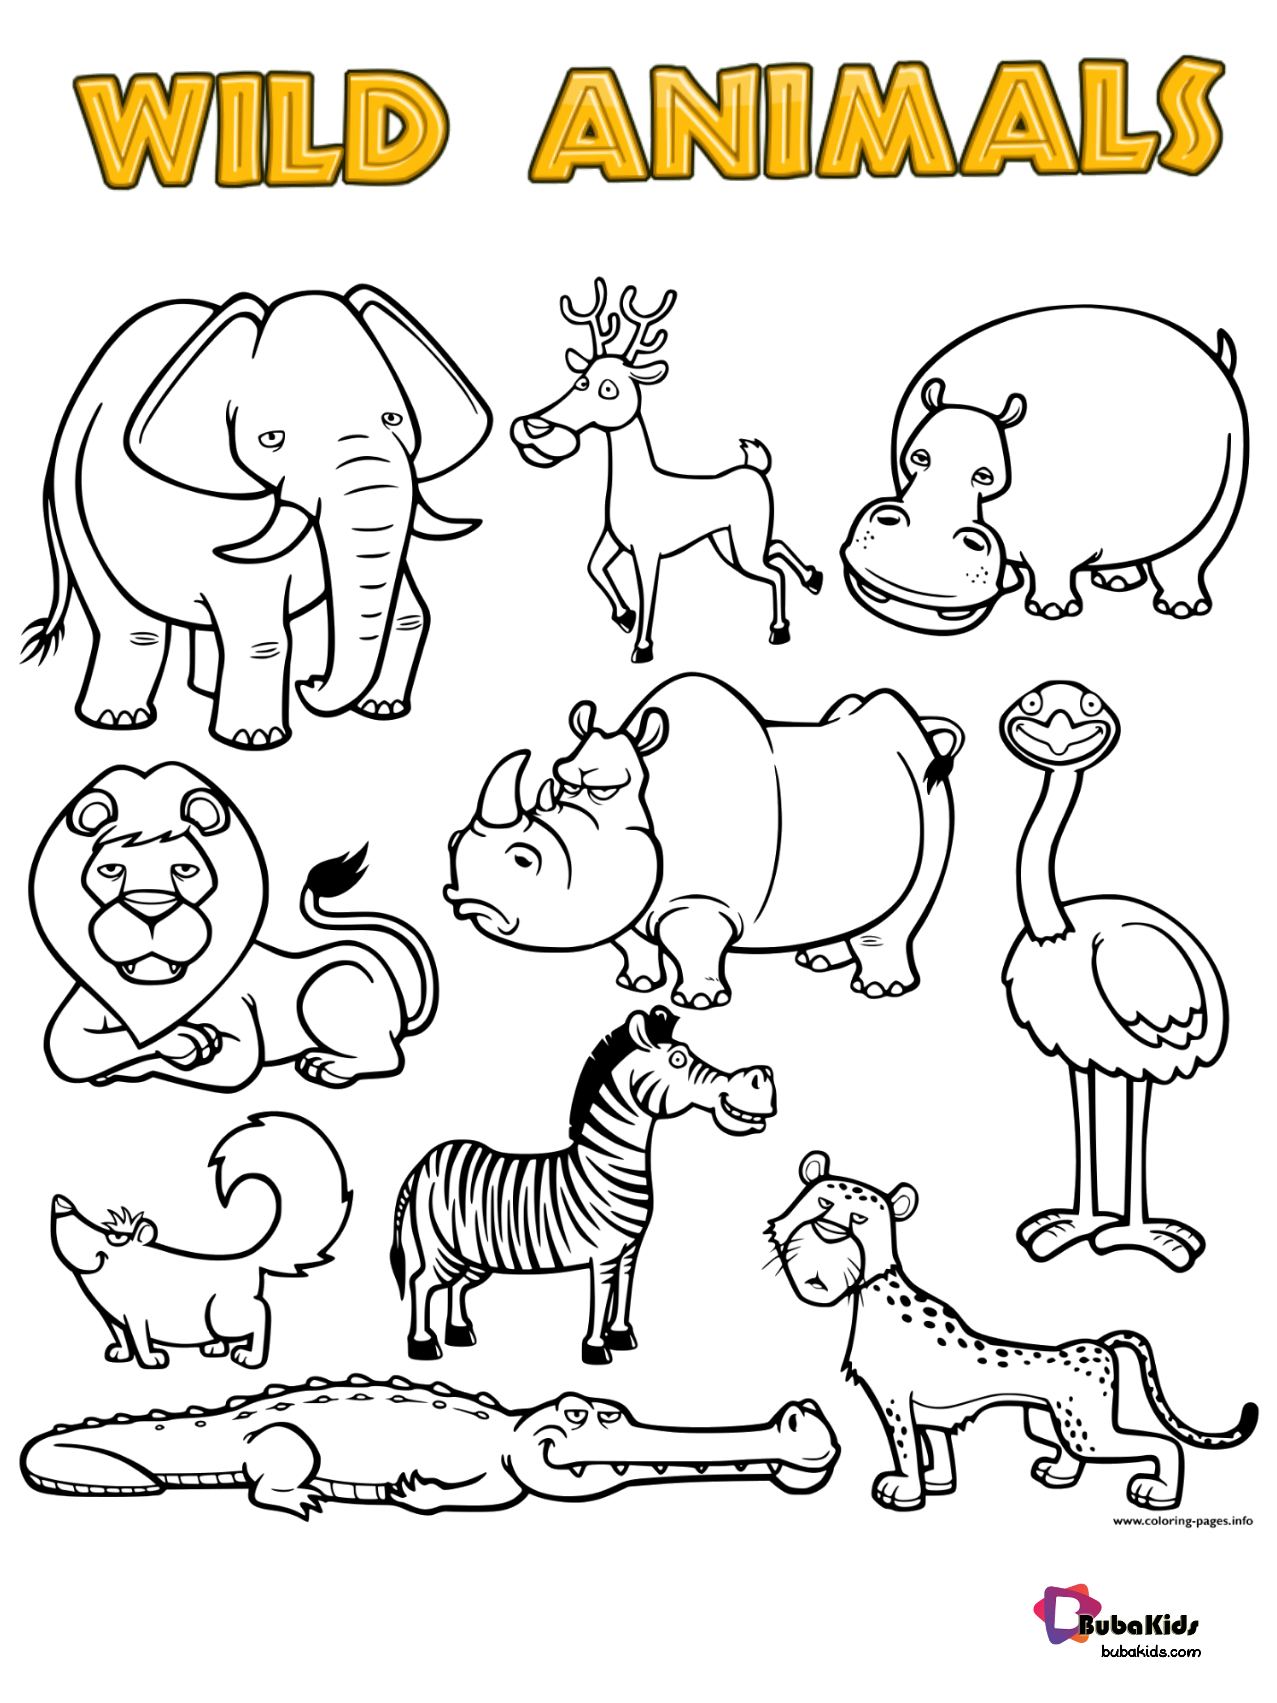 70 Animal Colouring Pages Free Download Print Animal Coloring Pages Animal Coloring Books Cartoon Coloring Pages